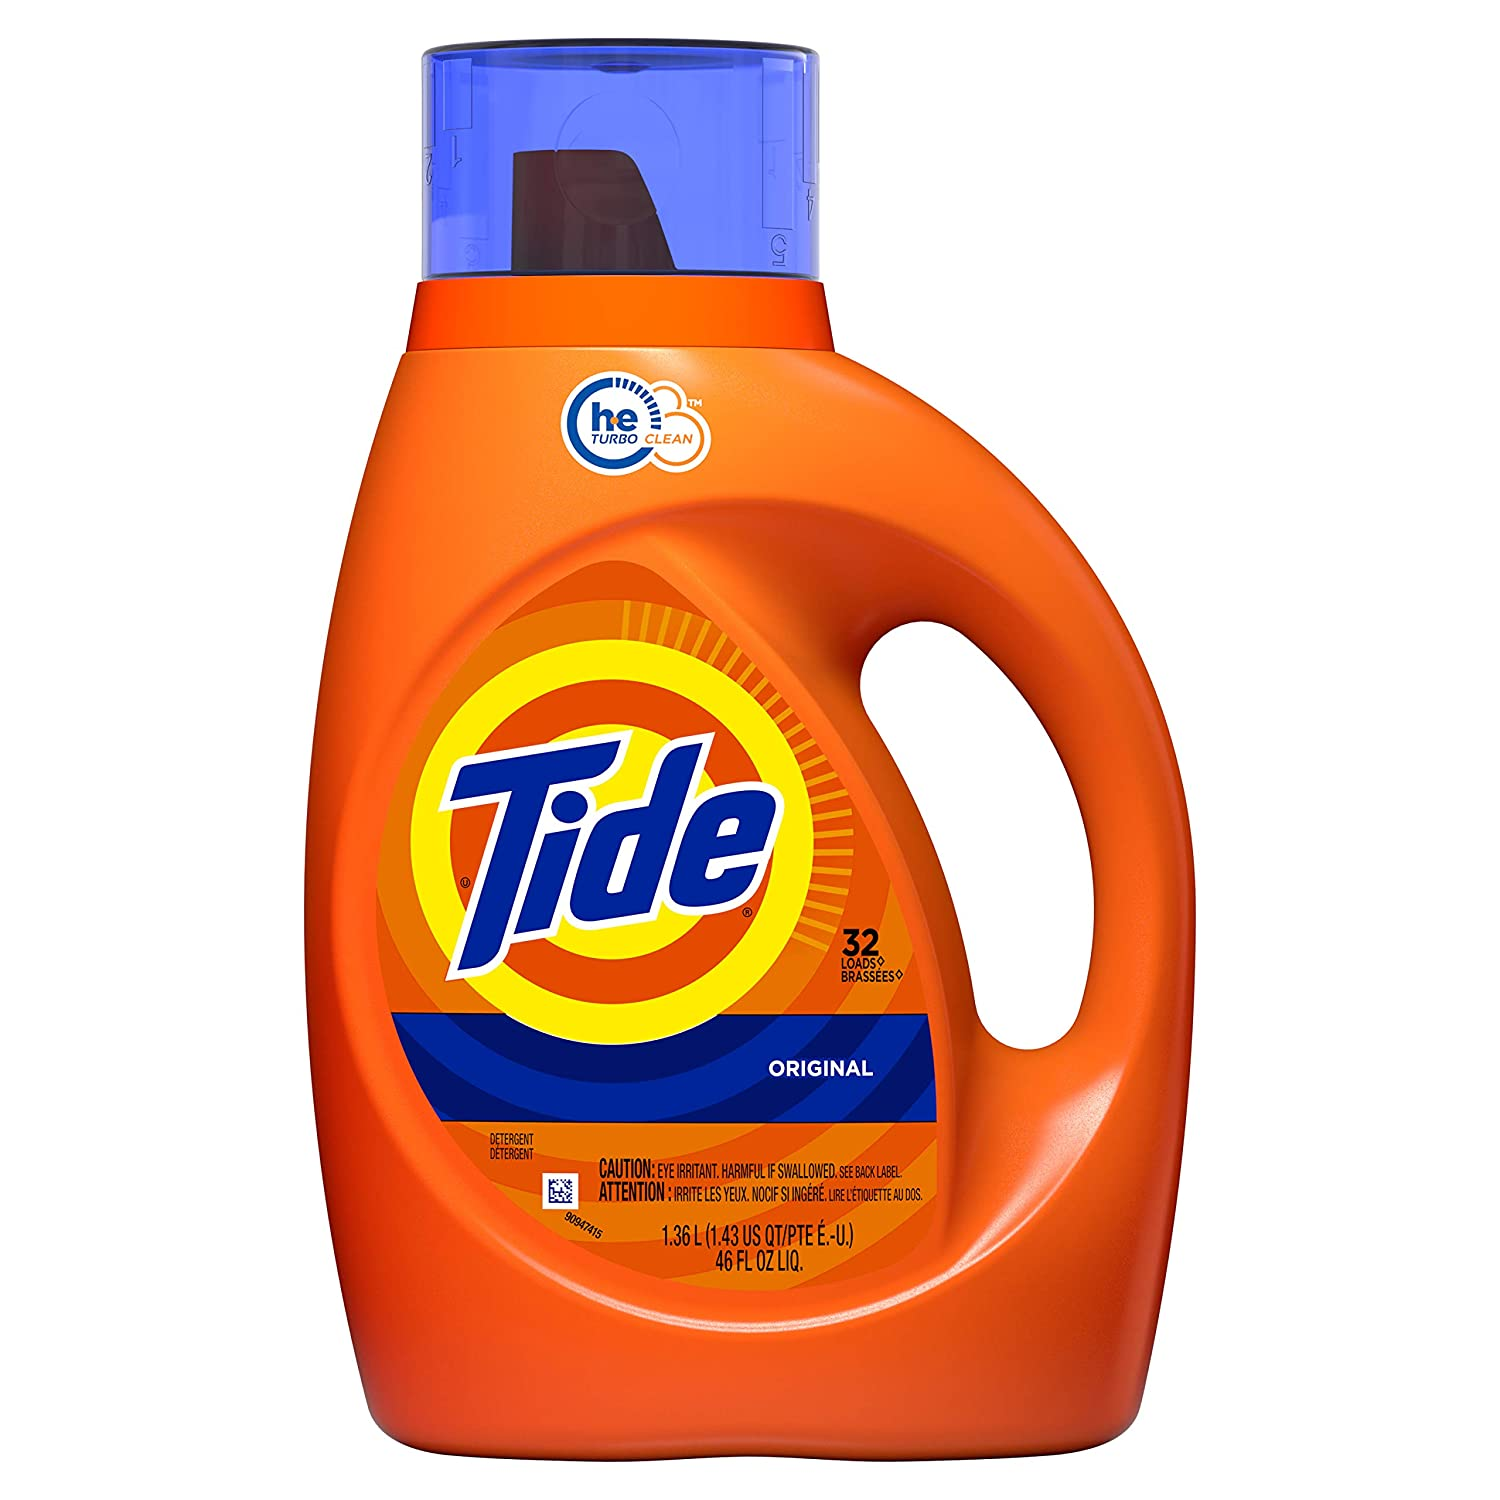 Tide Liquid Laundry Detergent, Original, 32 Loads, 46 Fl Oz